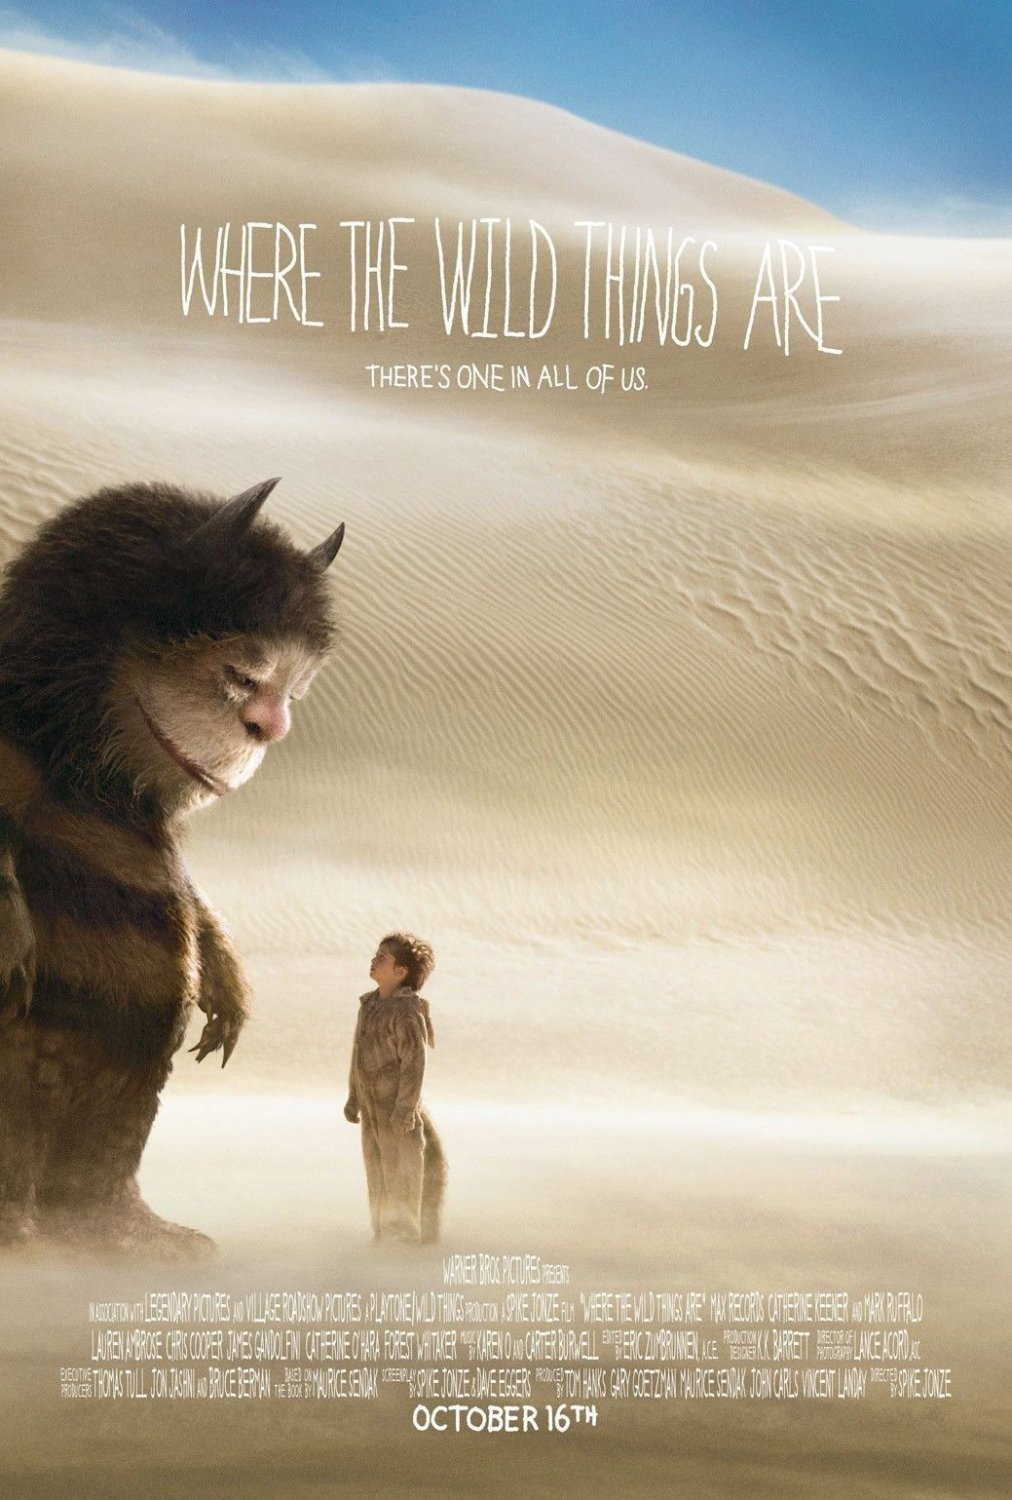 Where The Wild Things Are Movie 32x24 Poster Decor